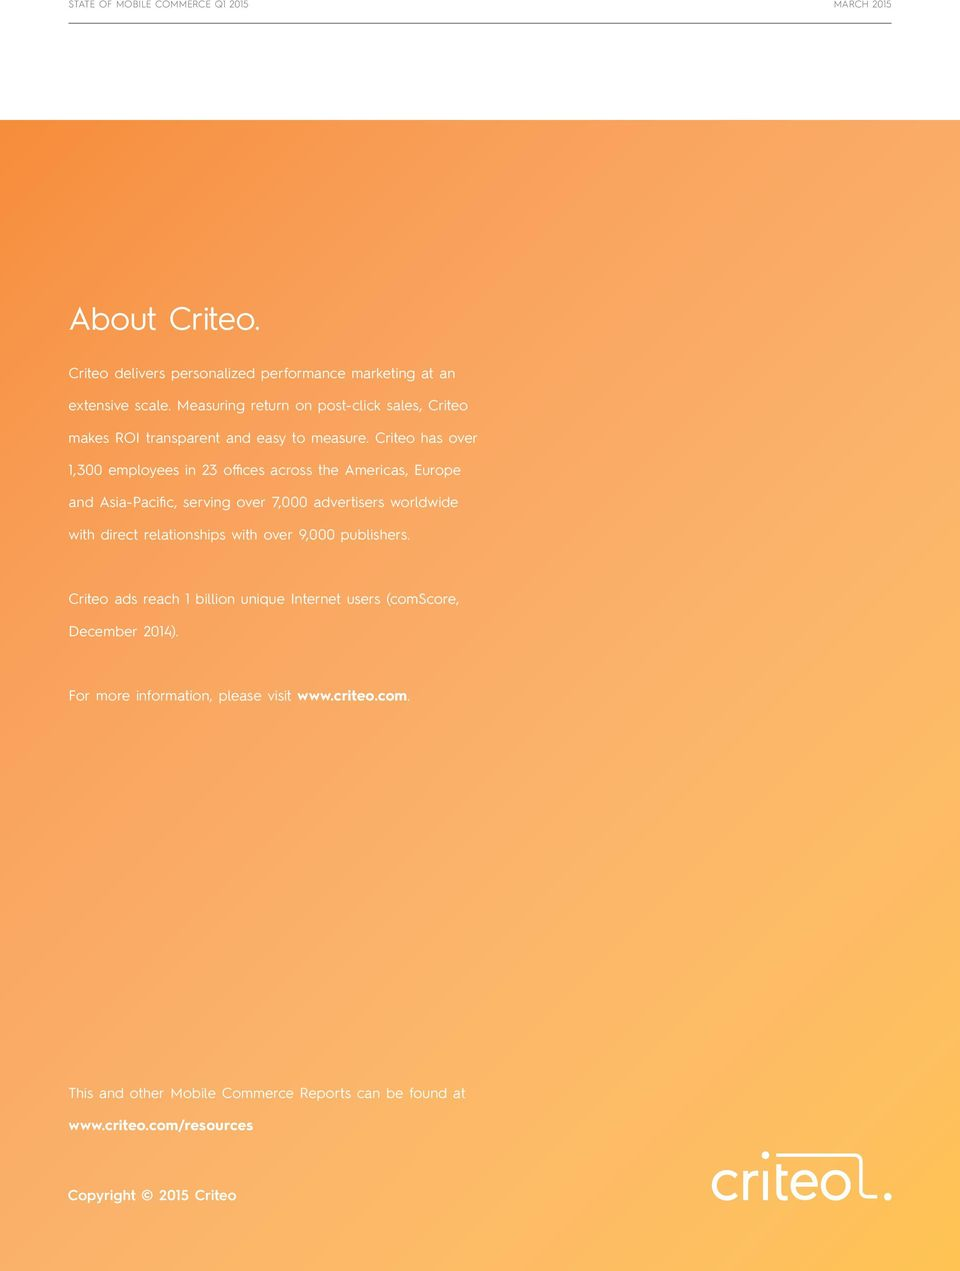 Criteo has over 1,300 employees in 23 offices across the Americas, Europe and Asia-Pacific, serving over 7,000 advertisers worldwide with direct